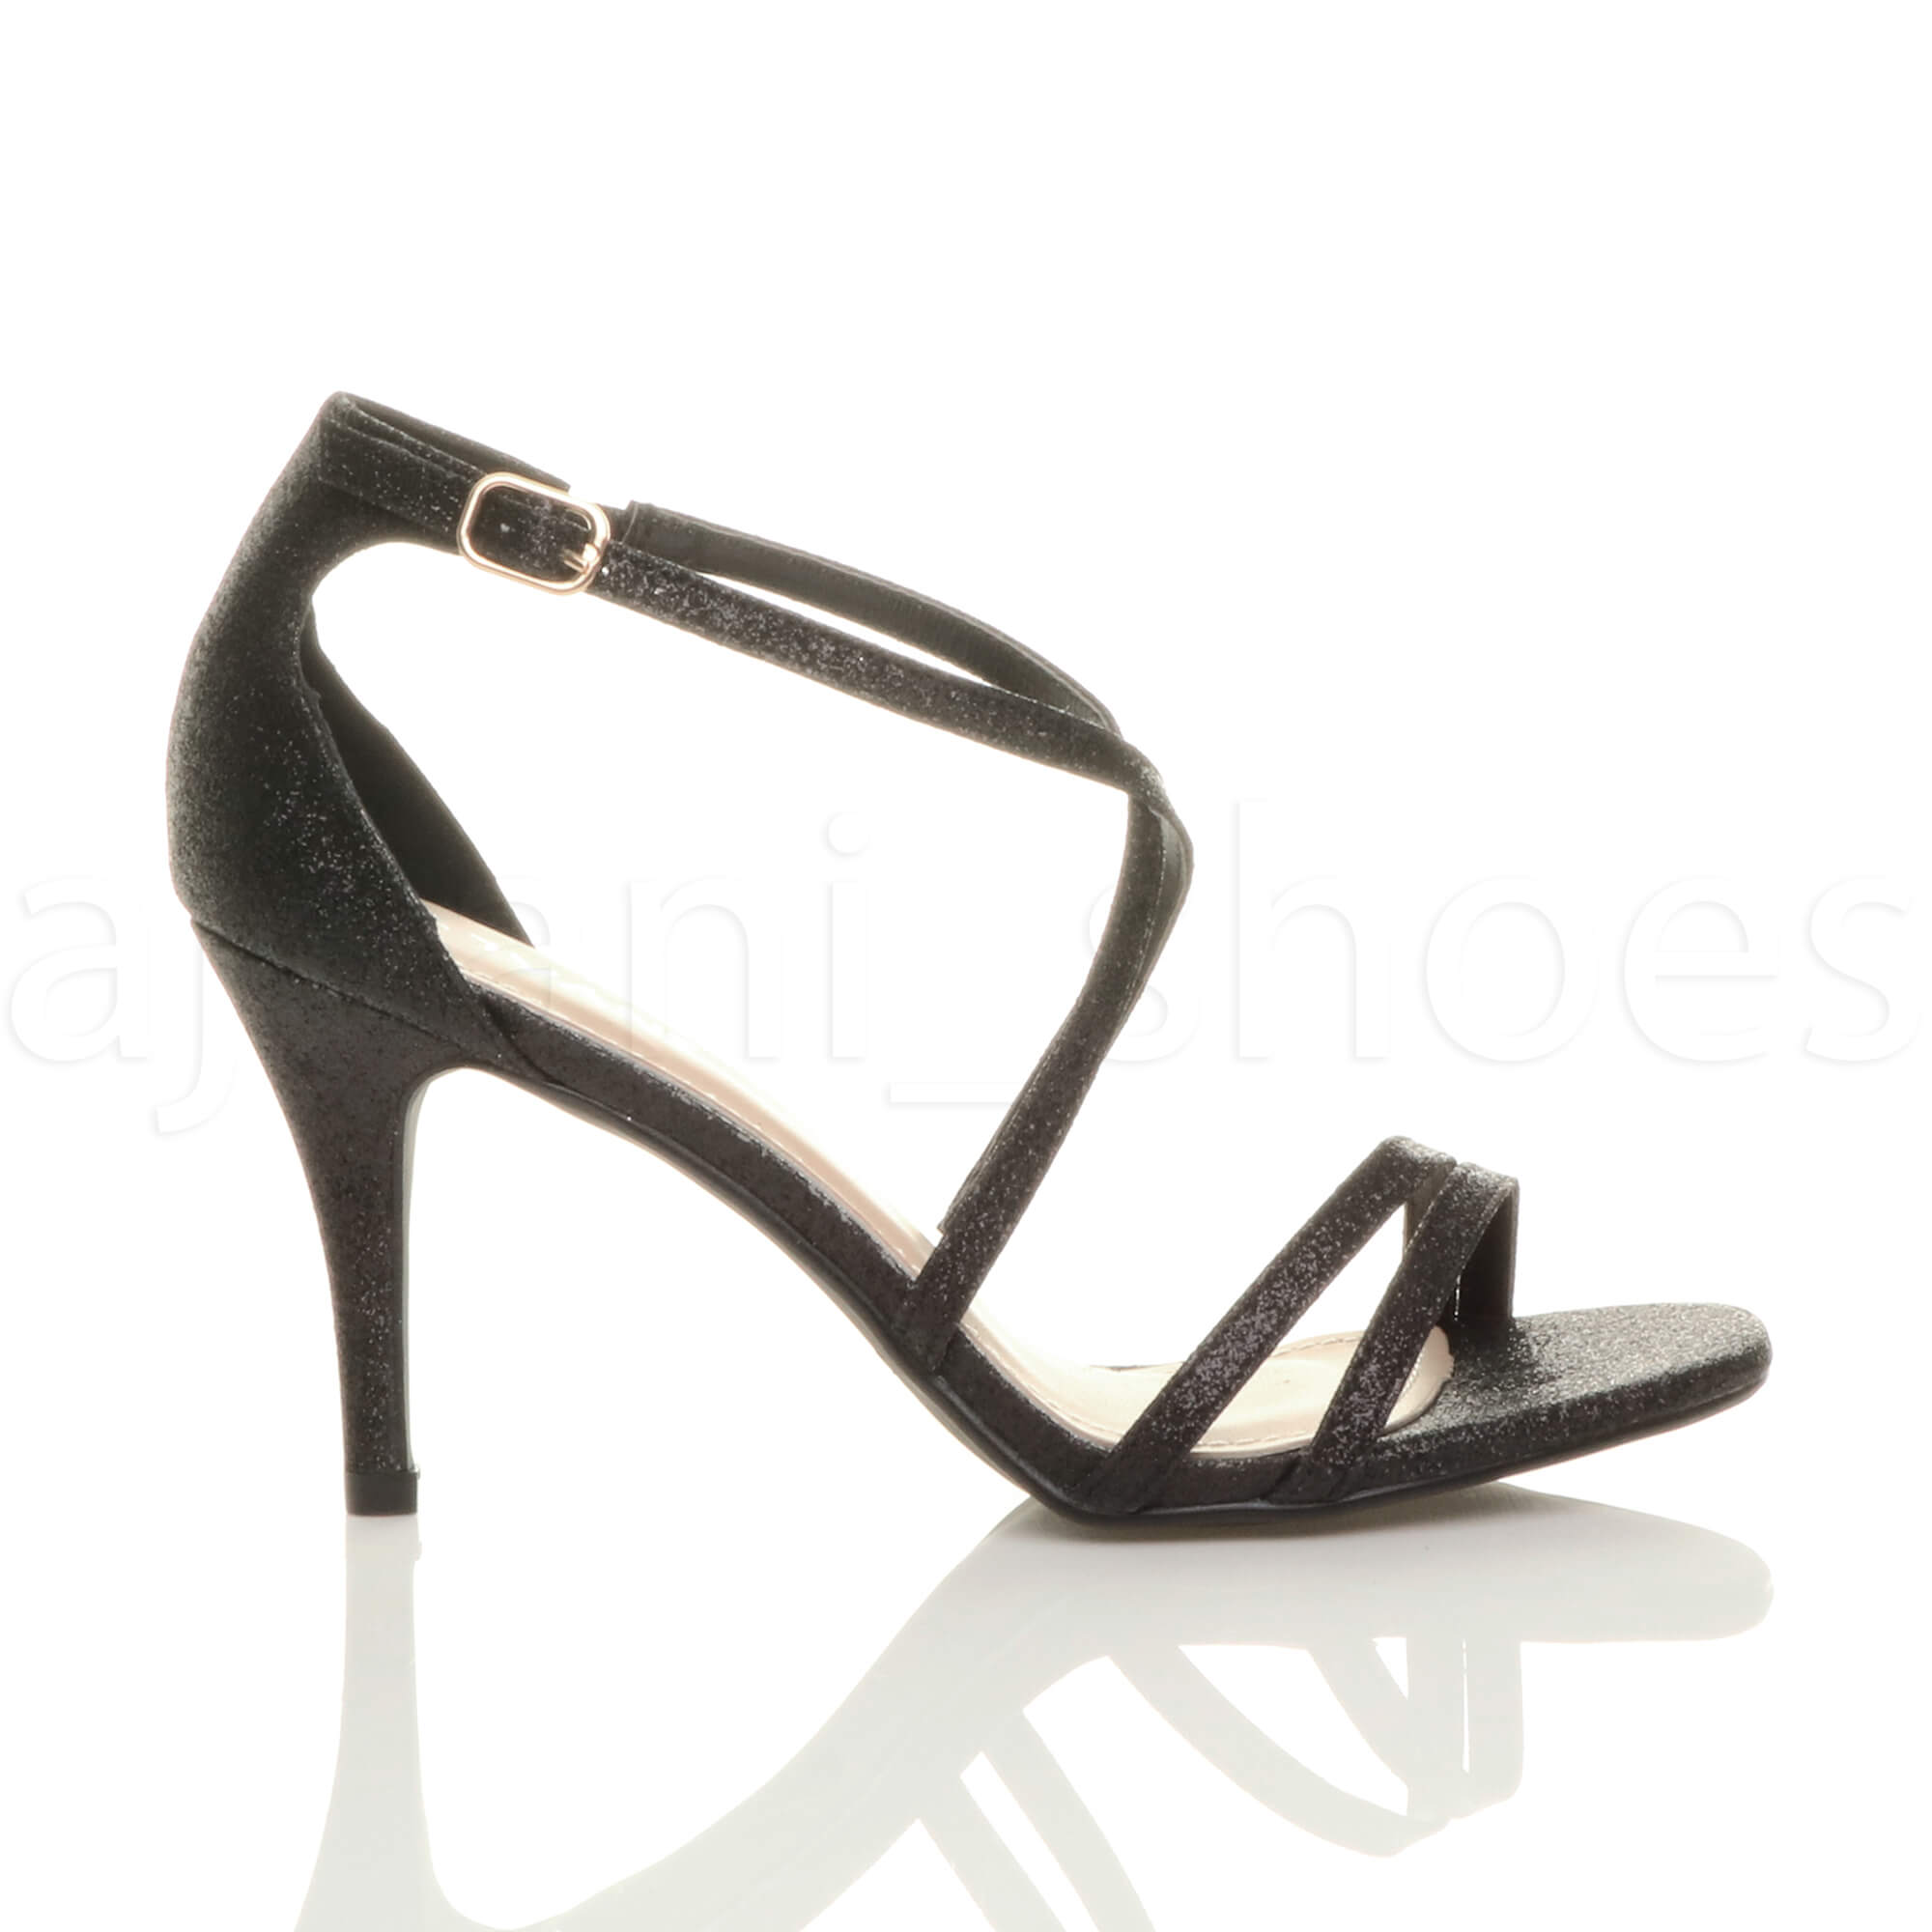 WOMENS-LADIES-MID-HIGH-HEEL-STRAPPY-CROSSOVER-WEDDING-PROM-SANDALS-SHOES-SIZE thumbnail 10